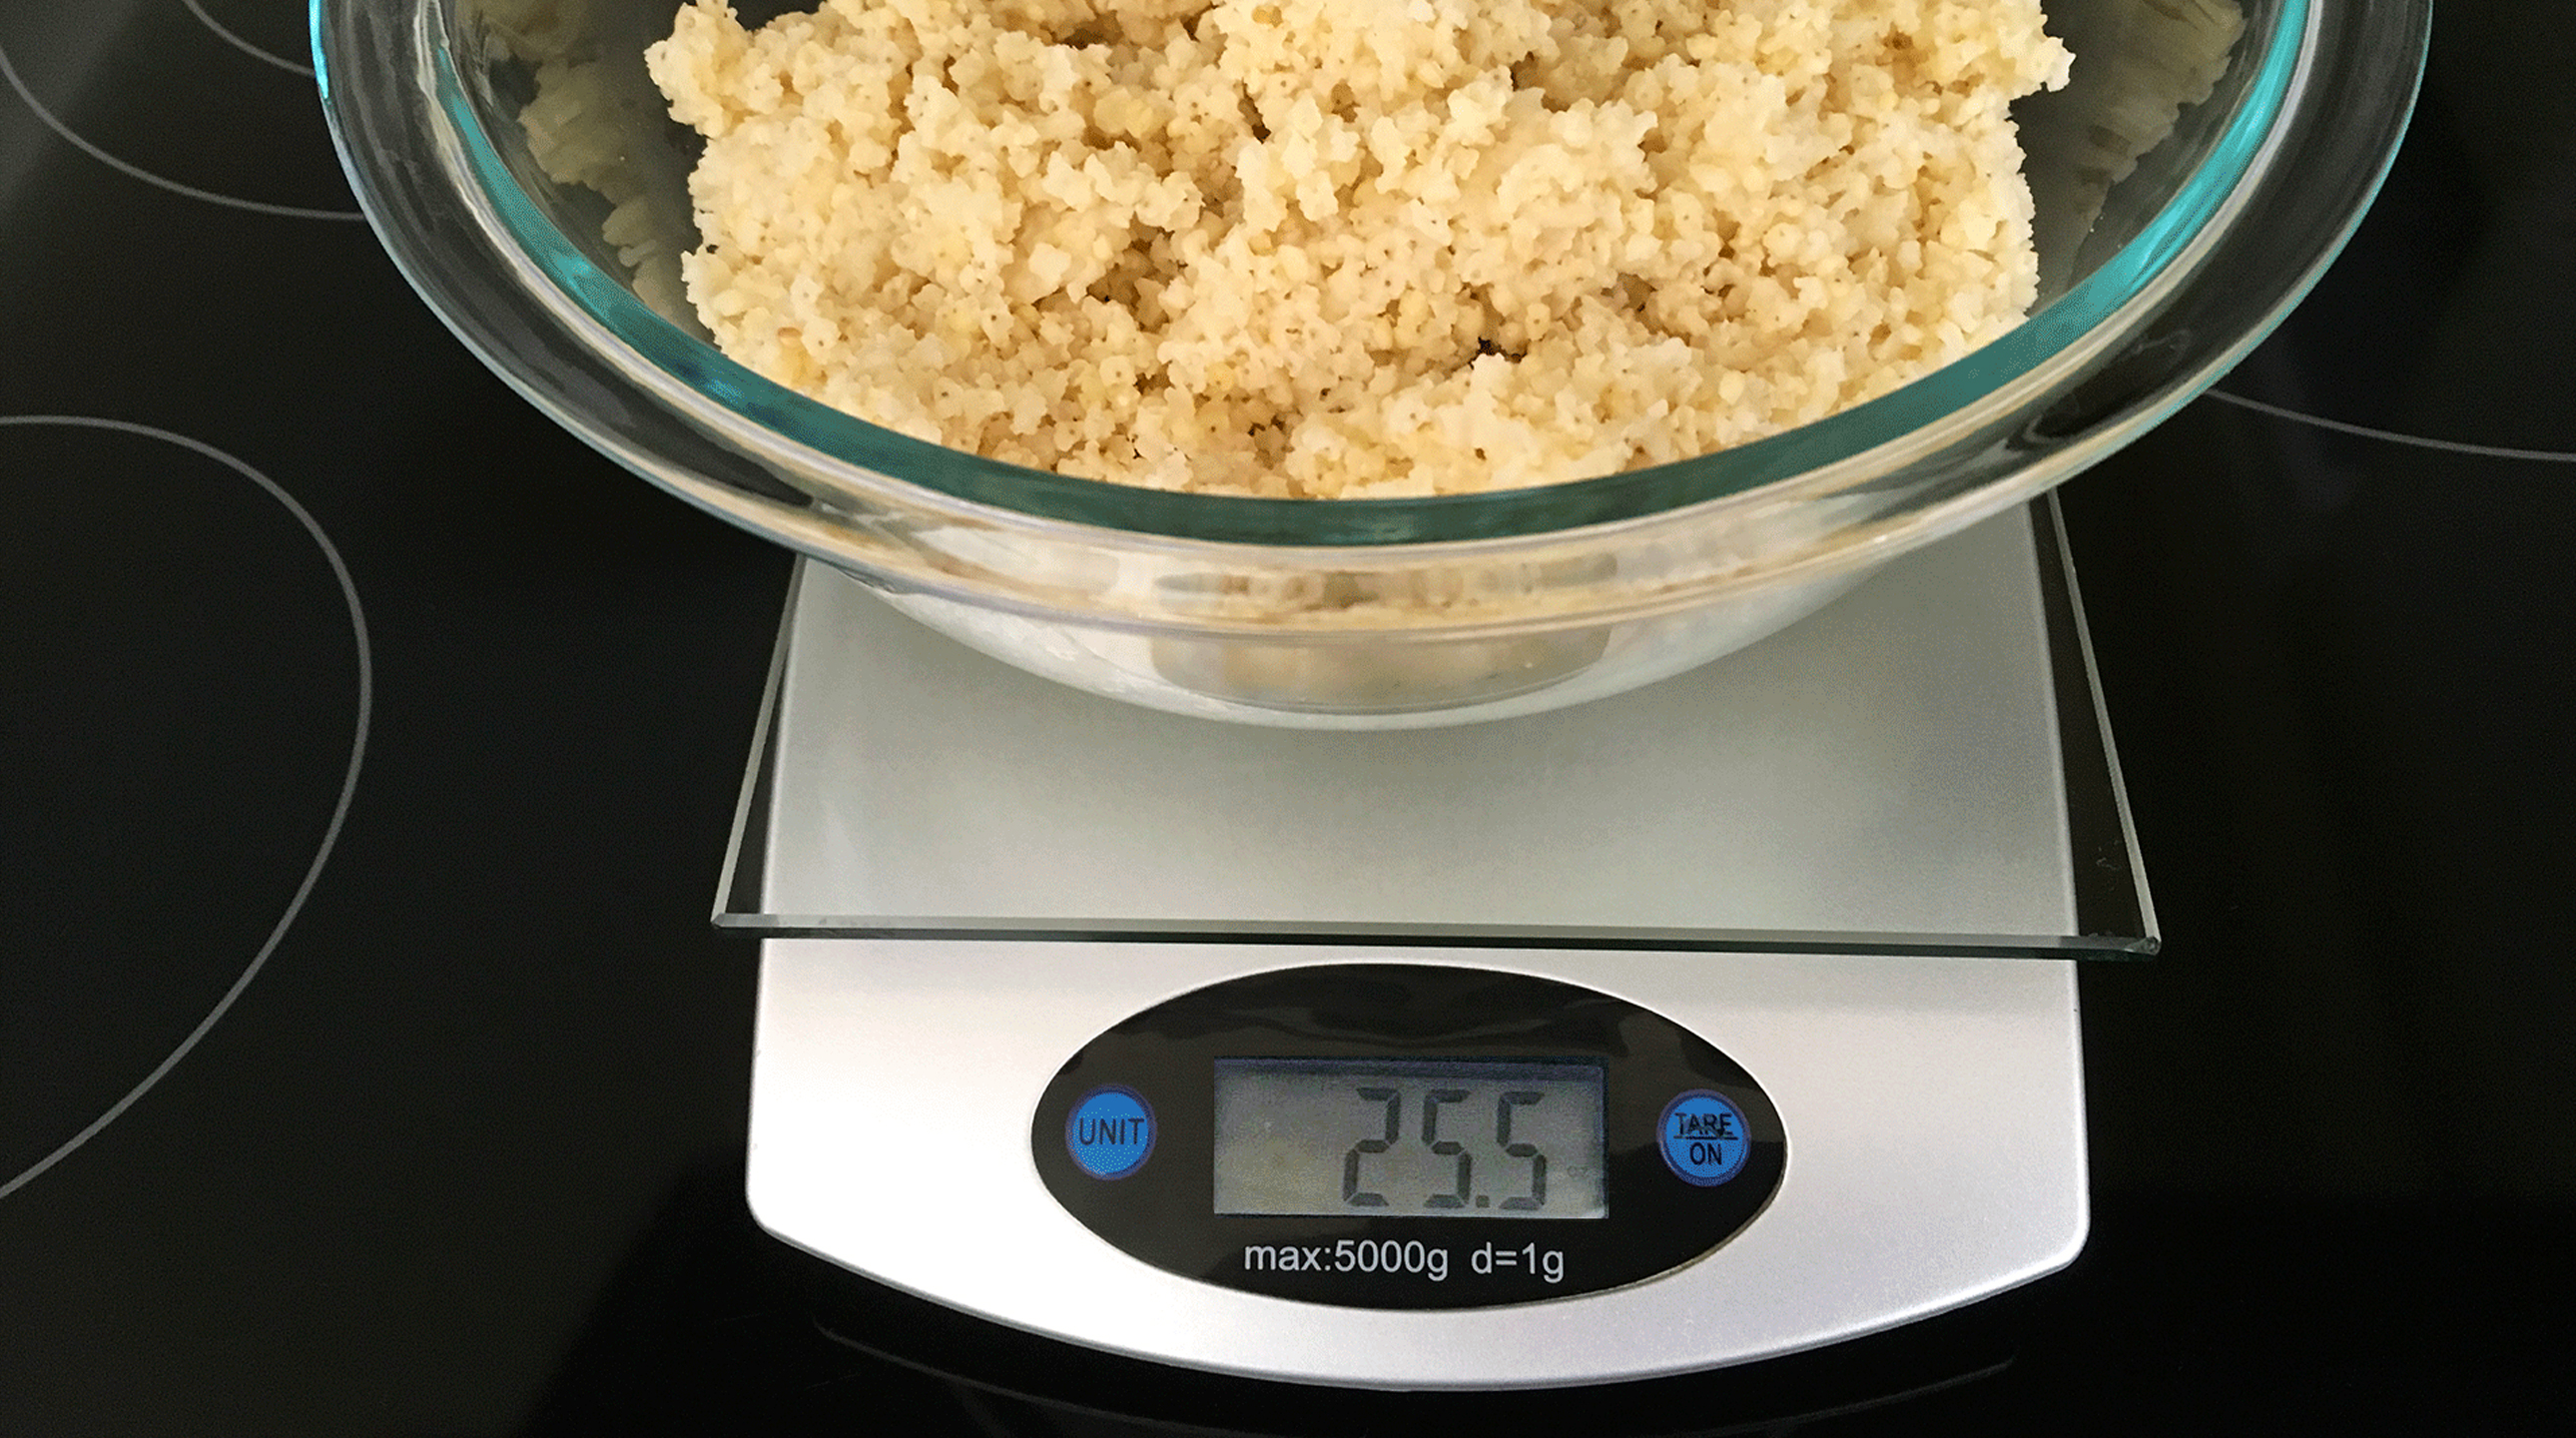 Carbohydrates being weighed on food scale before mixing in